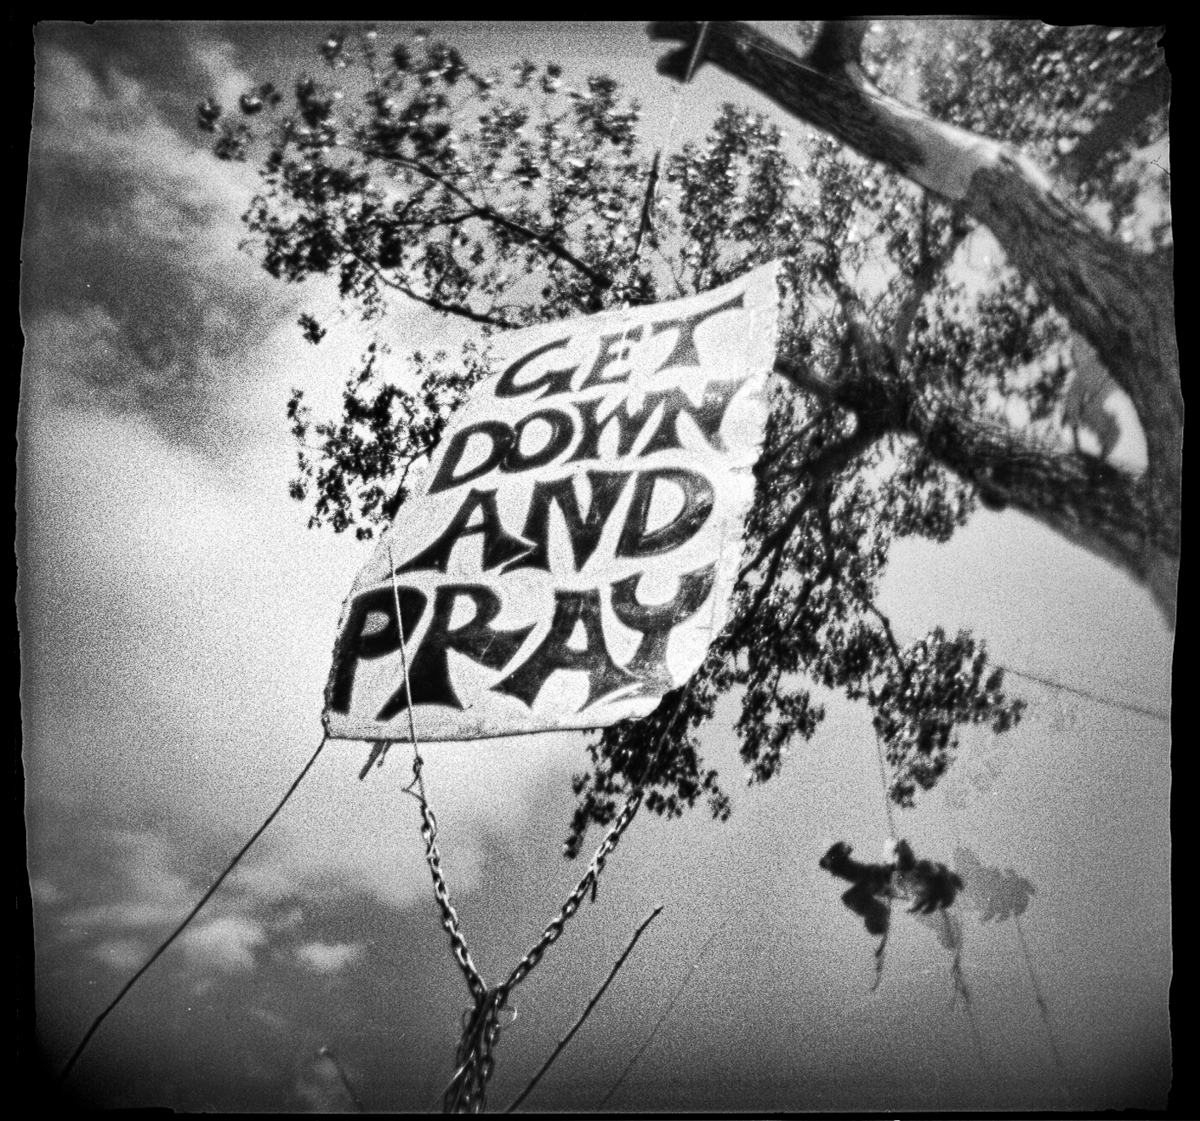 """Hanging Tree: Commandment,"" shot with a Holga camera, was selected for the 2018 Somerville Toy Camera Festival at the Brickbottom Gallery in Boston."